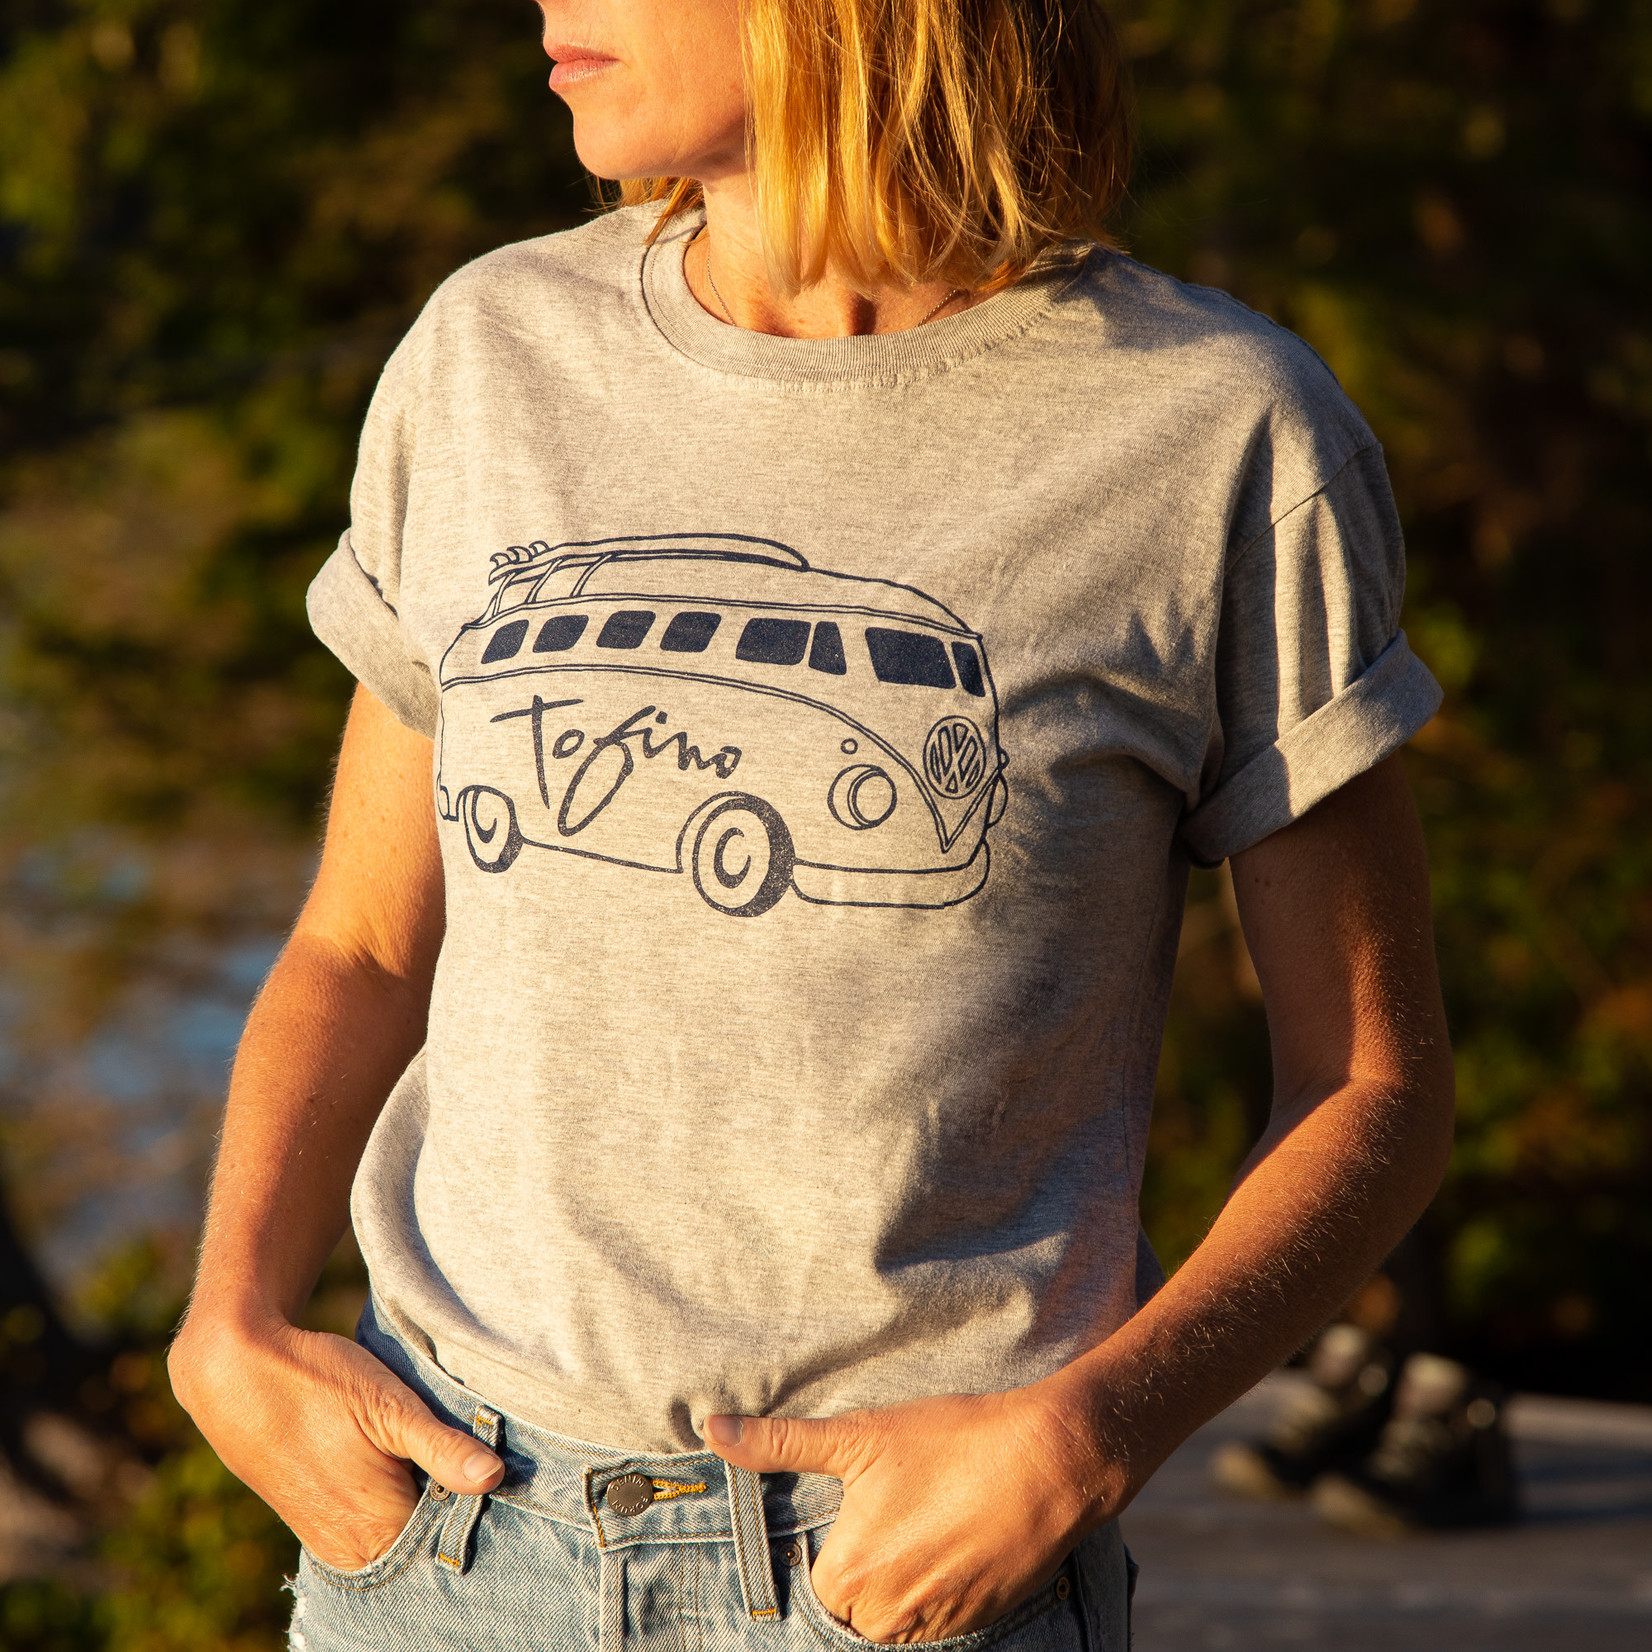 Tourism Tofino T-Shirt Chestervan Fitted